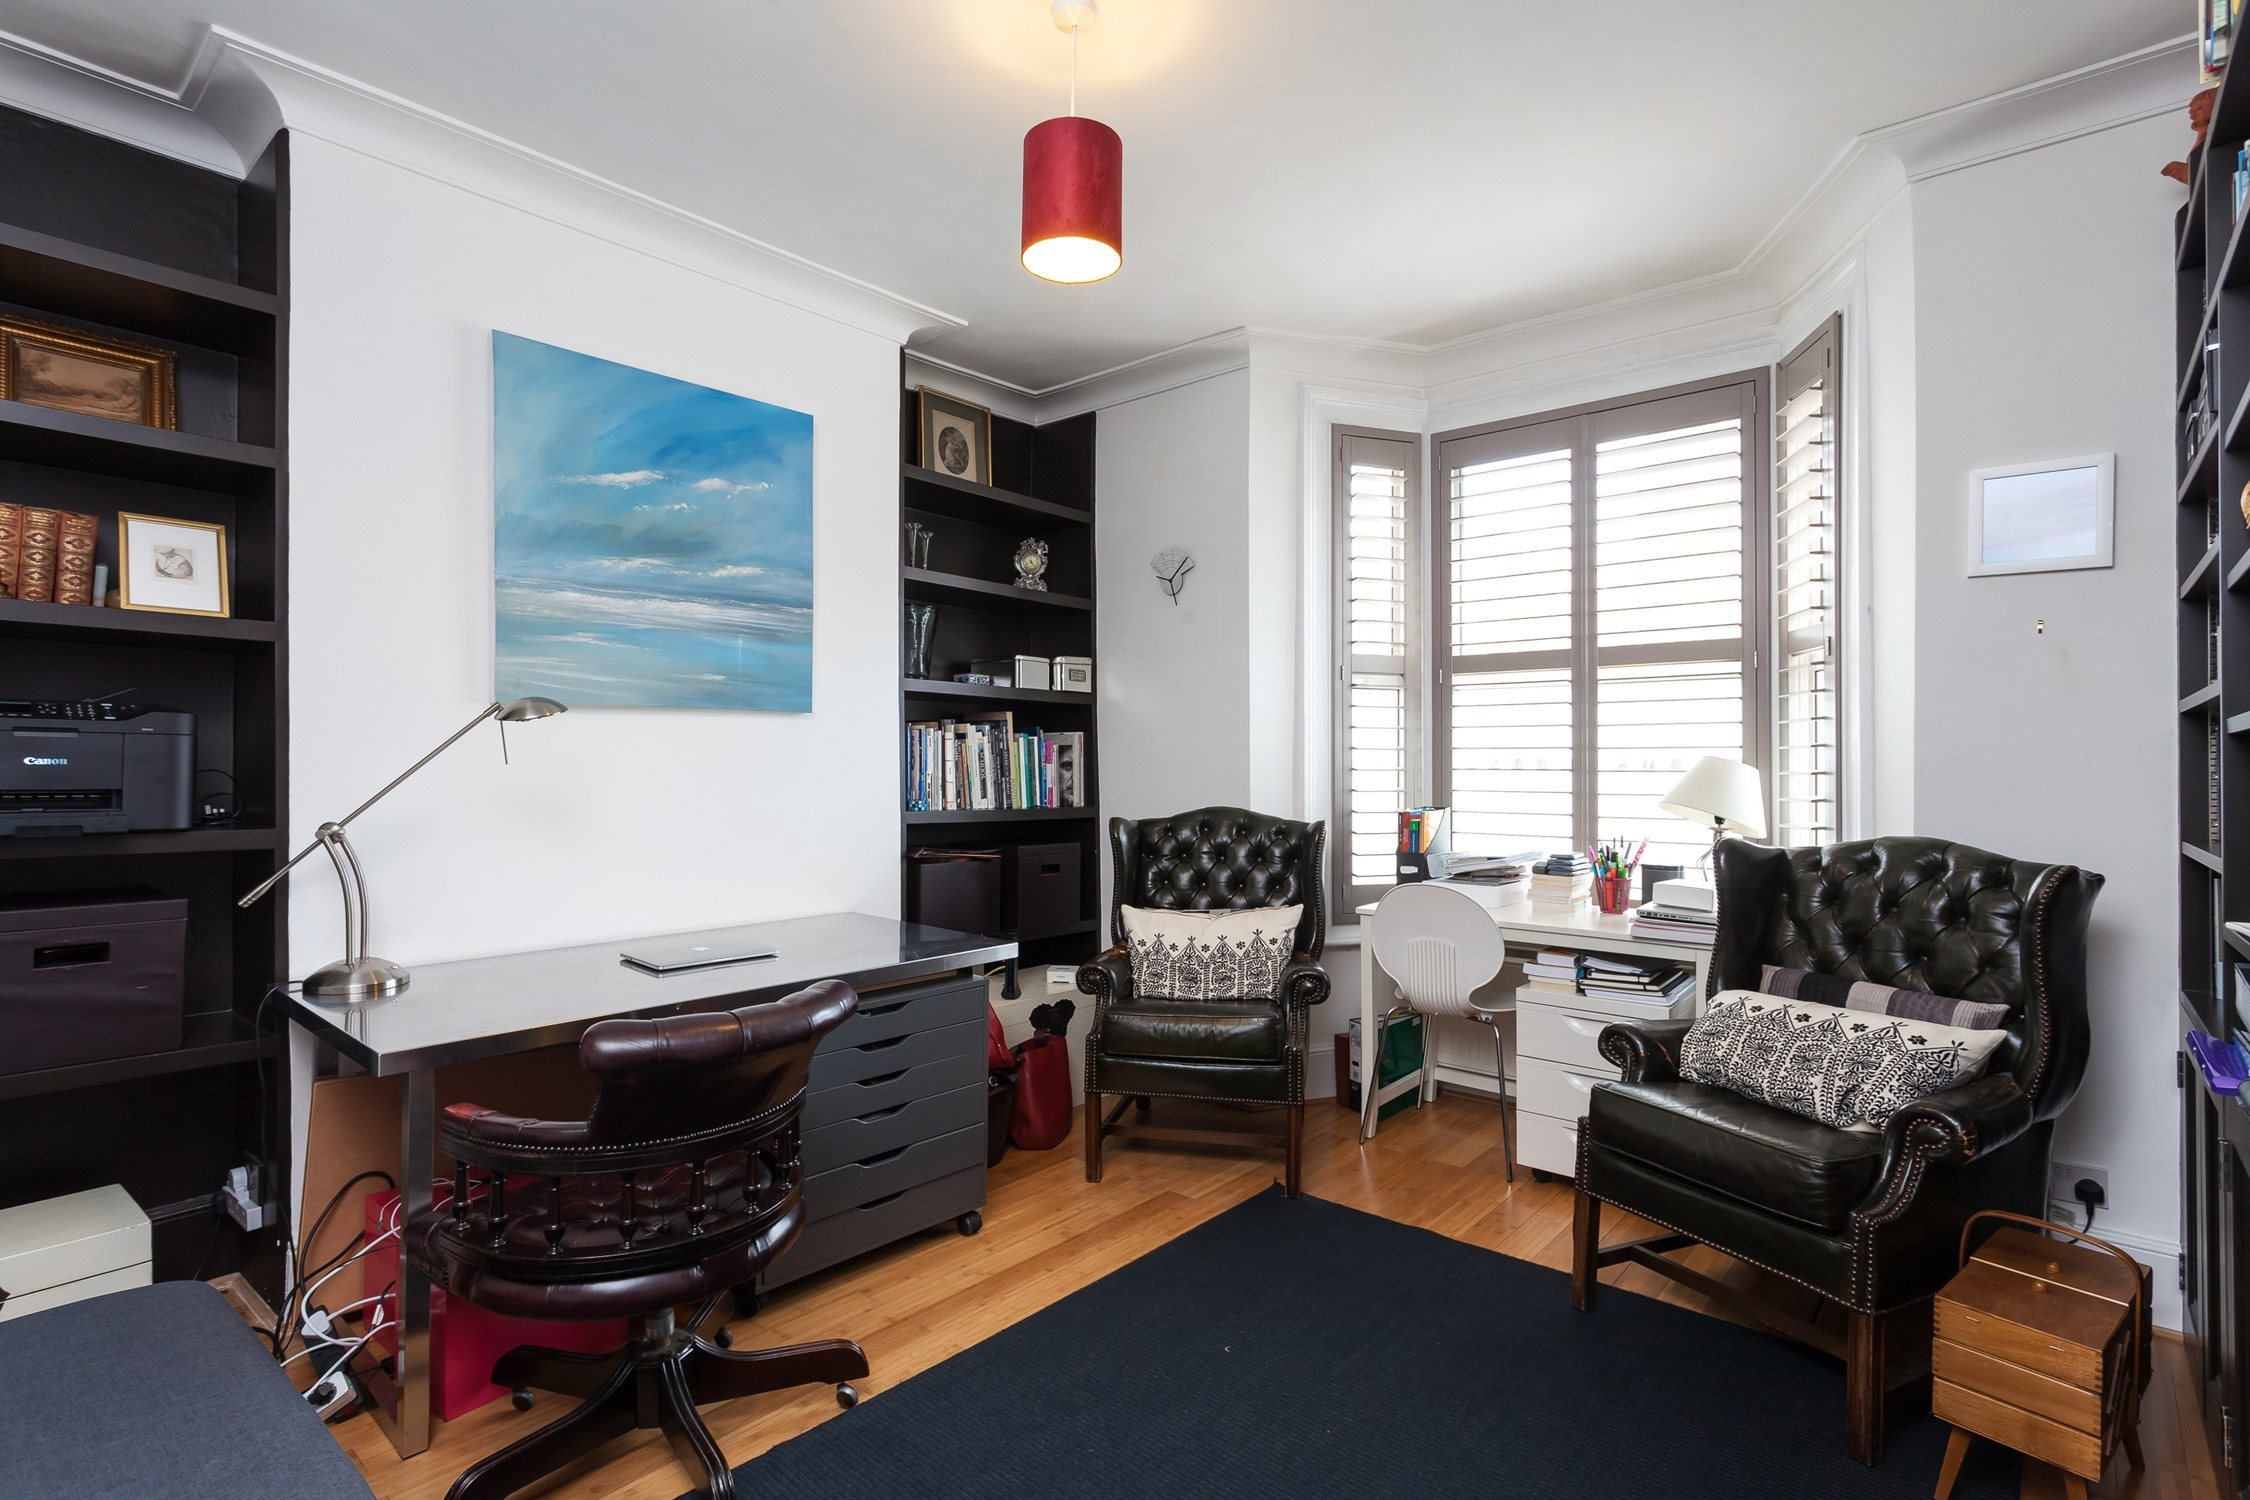 Portico - 4 Bedroom Flat to rent (under offer) in Clapham ...